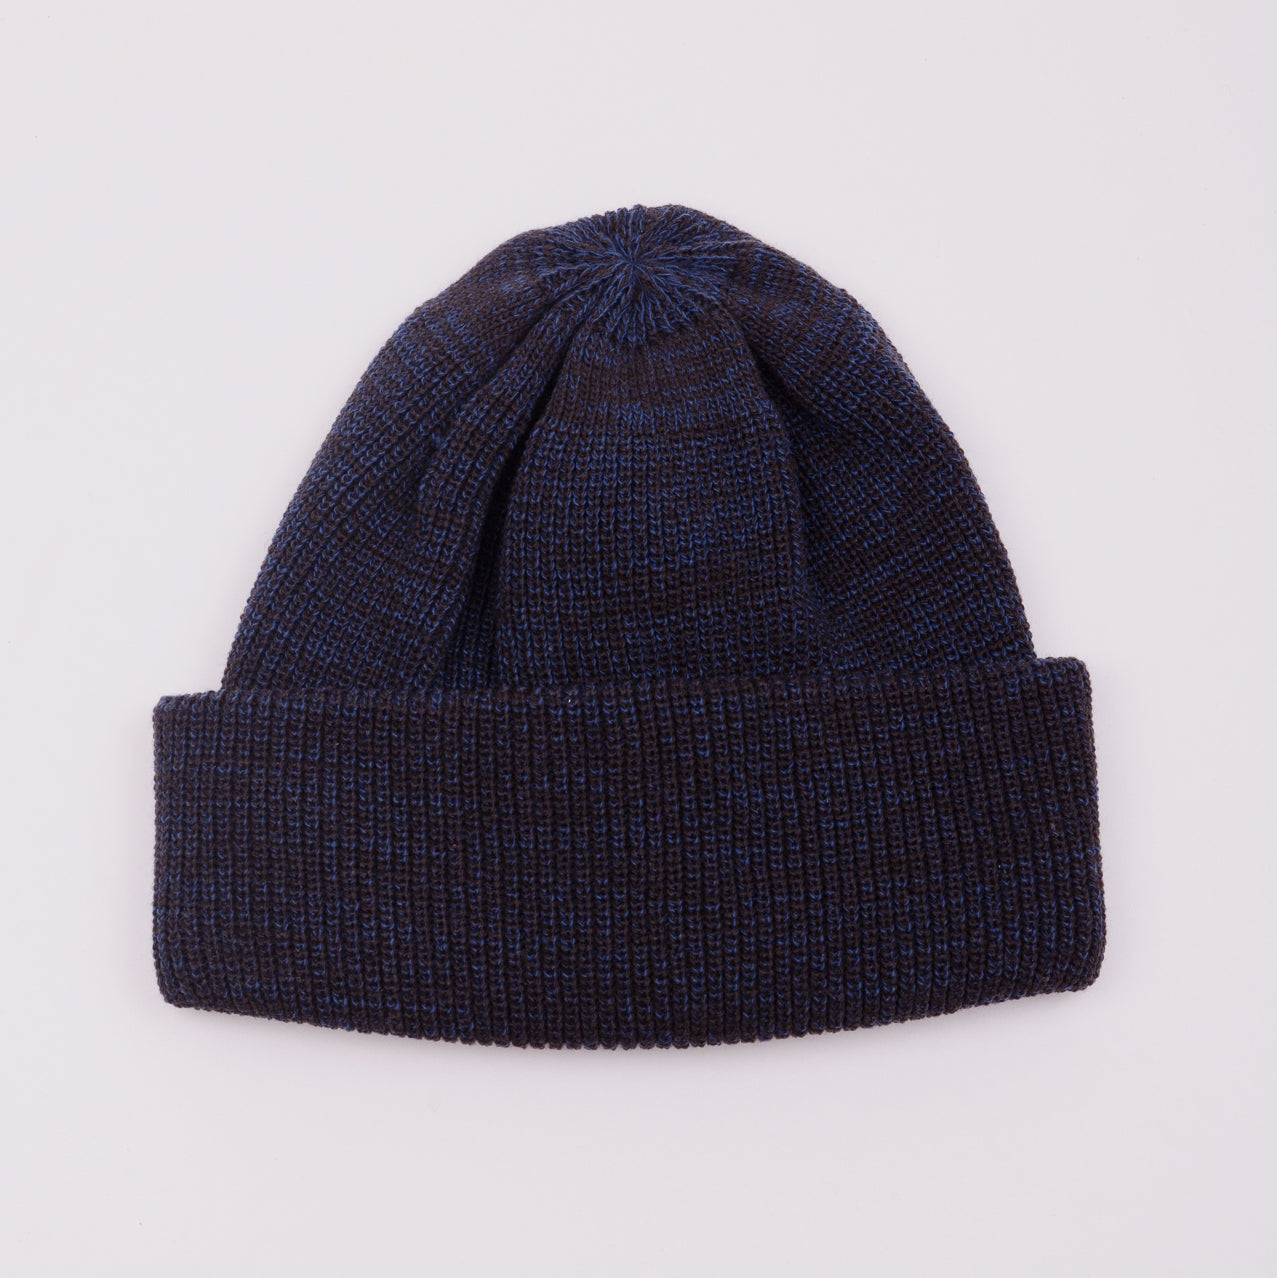 ROTOTO BULKY WATCH CAP - CHARCOAL / BLUE